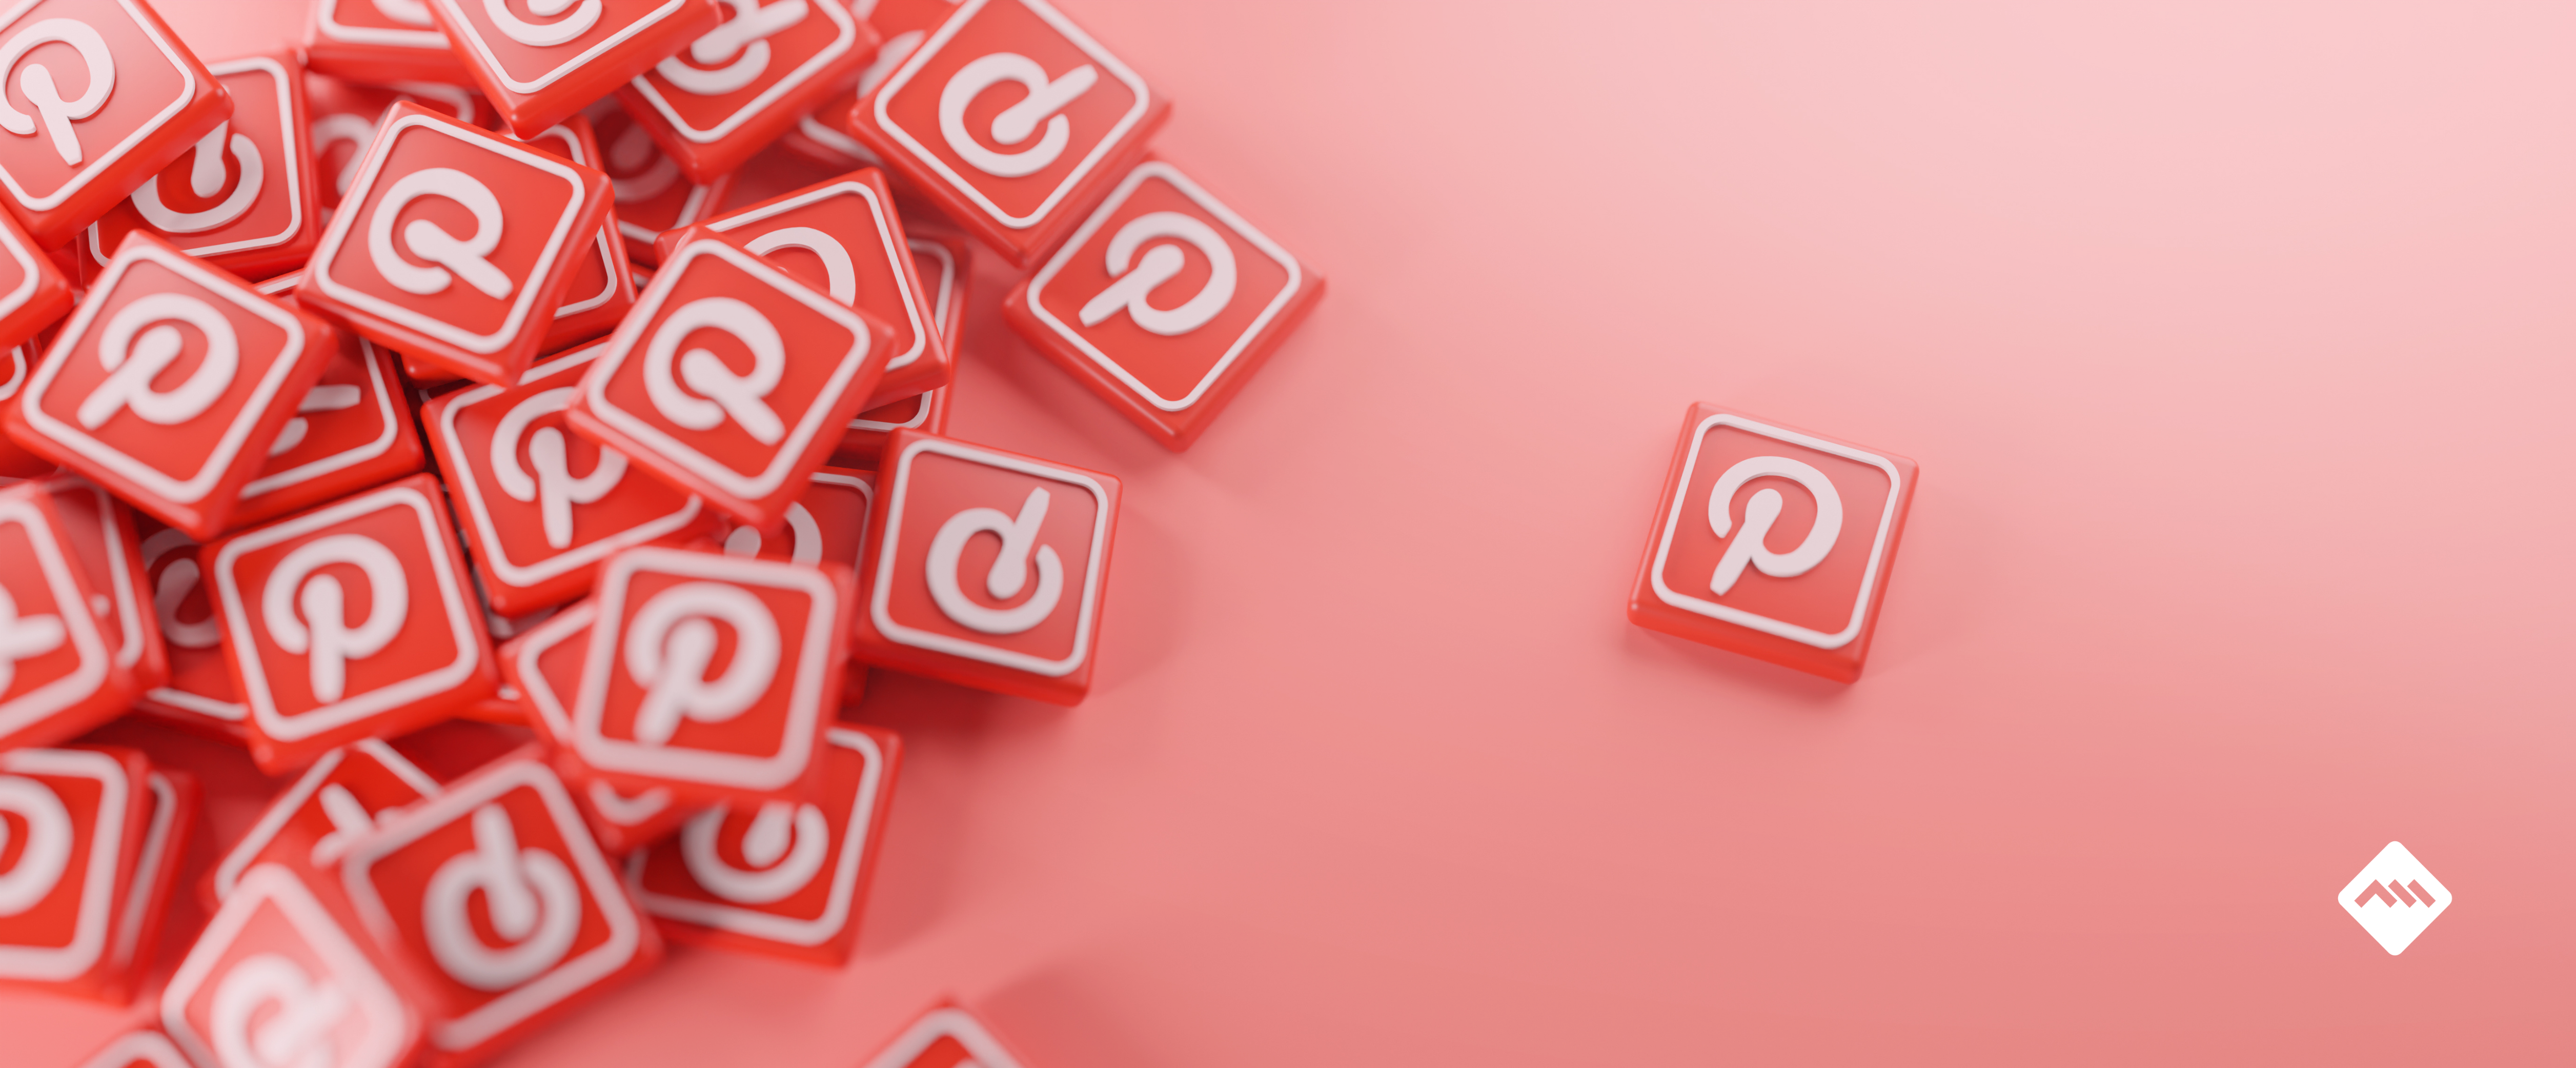 Why your brand should advertise on Pinterest?